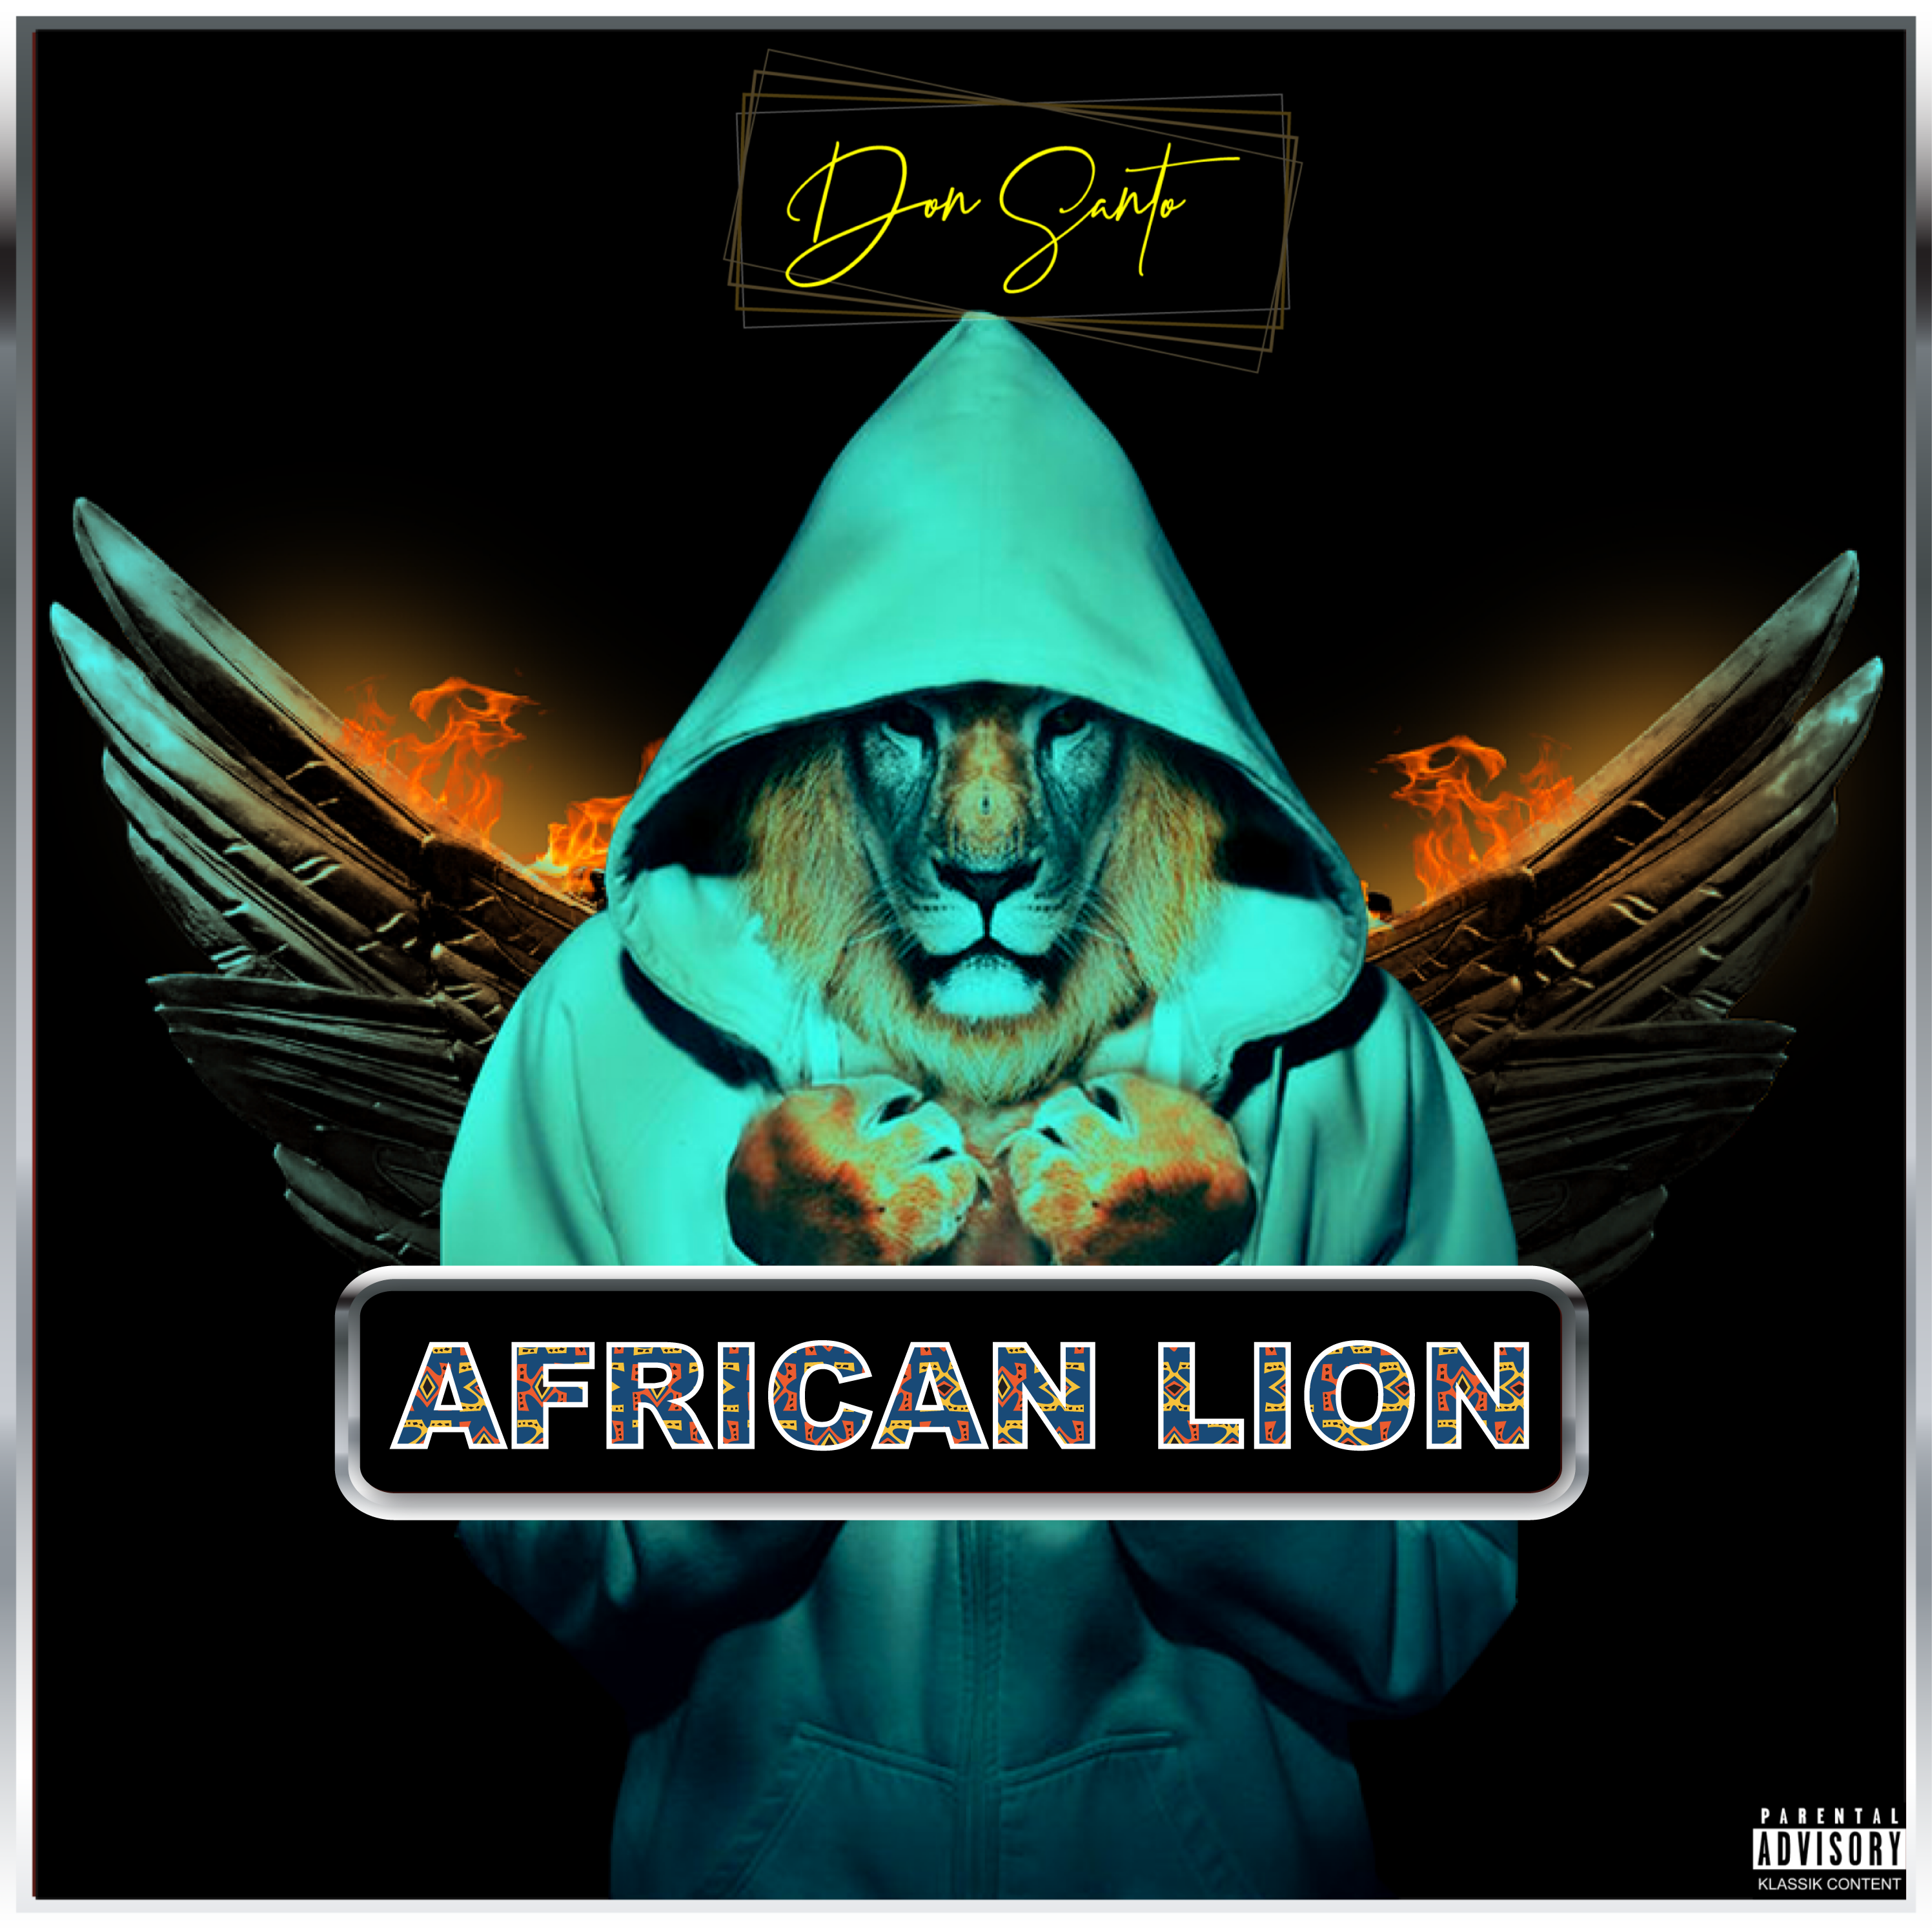 DON SANTO - AFRICAN LION